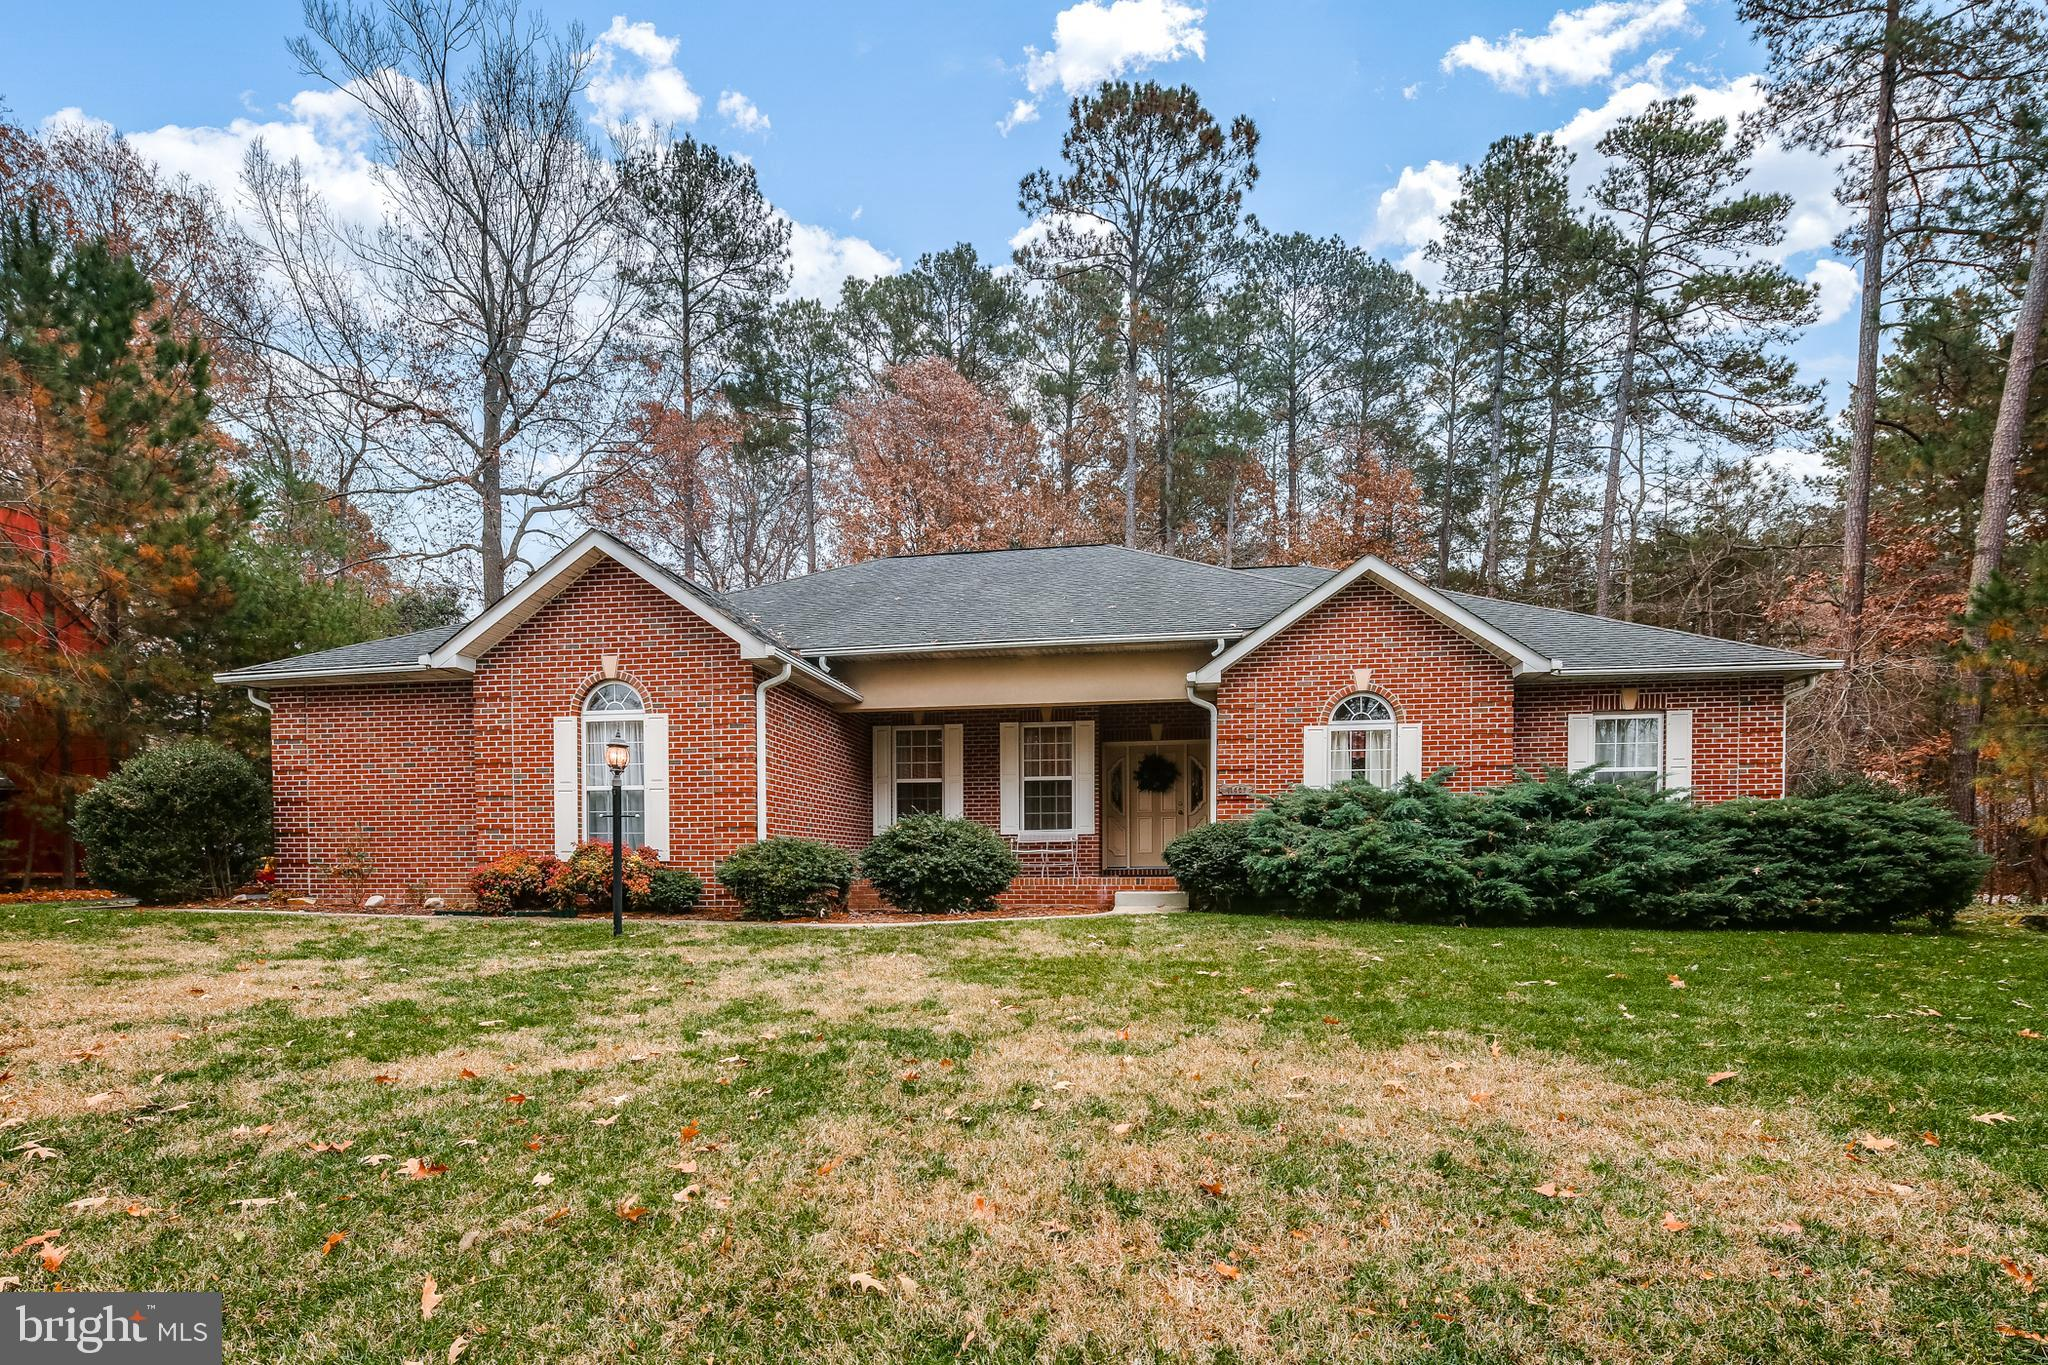 11407 WOLLASTON CIRCLE, SWAN POINT, MD 20645